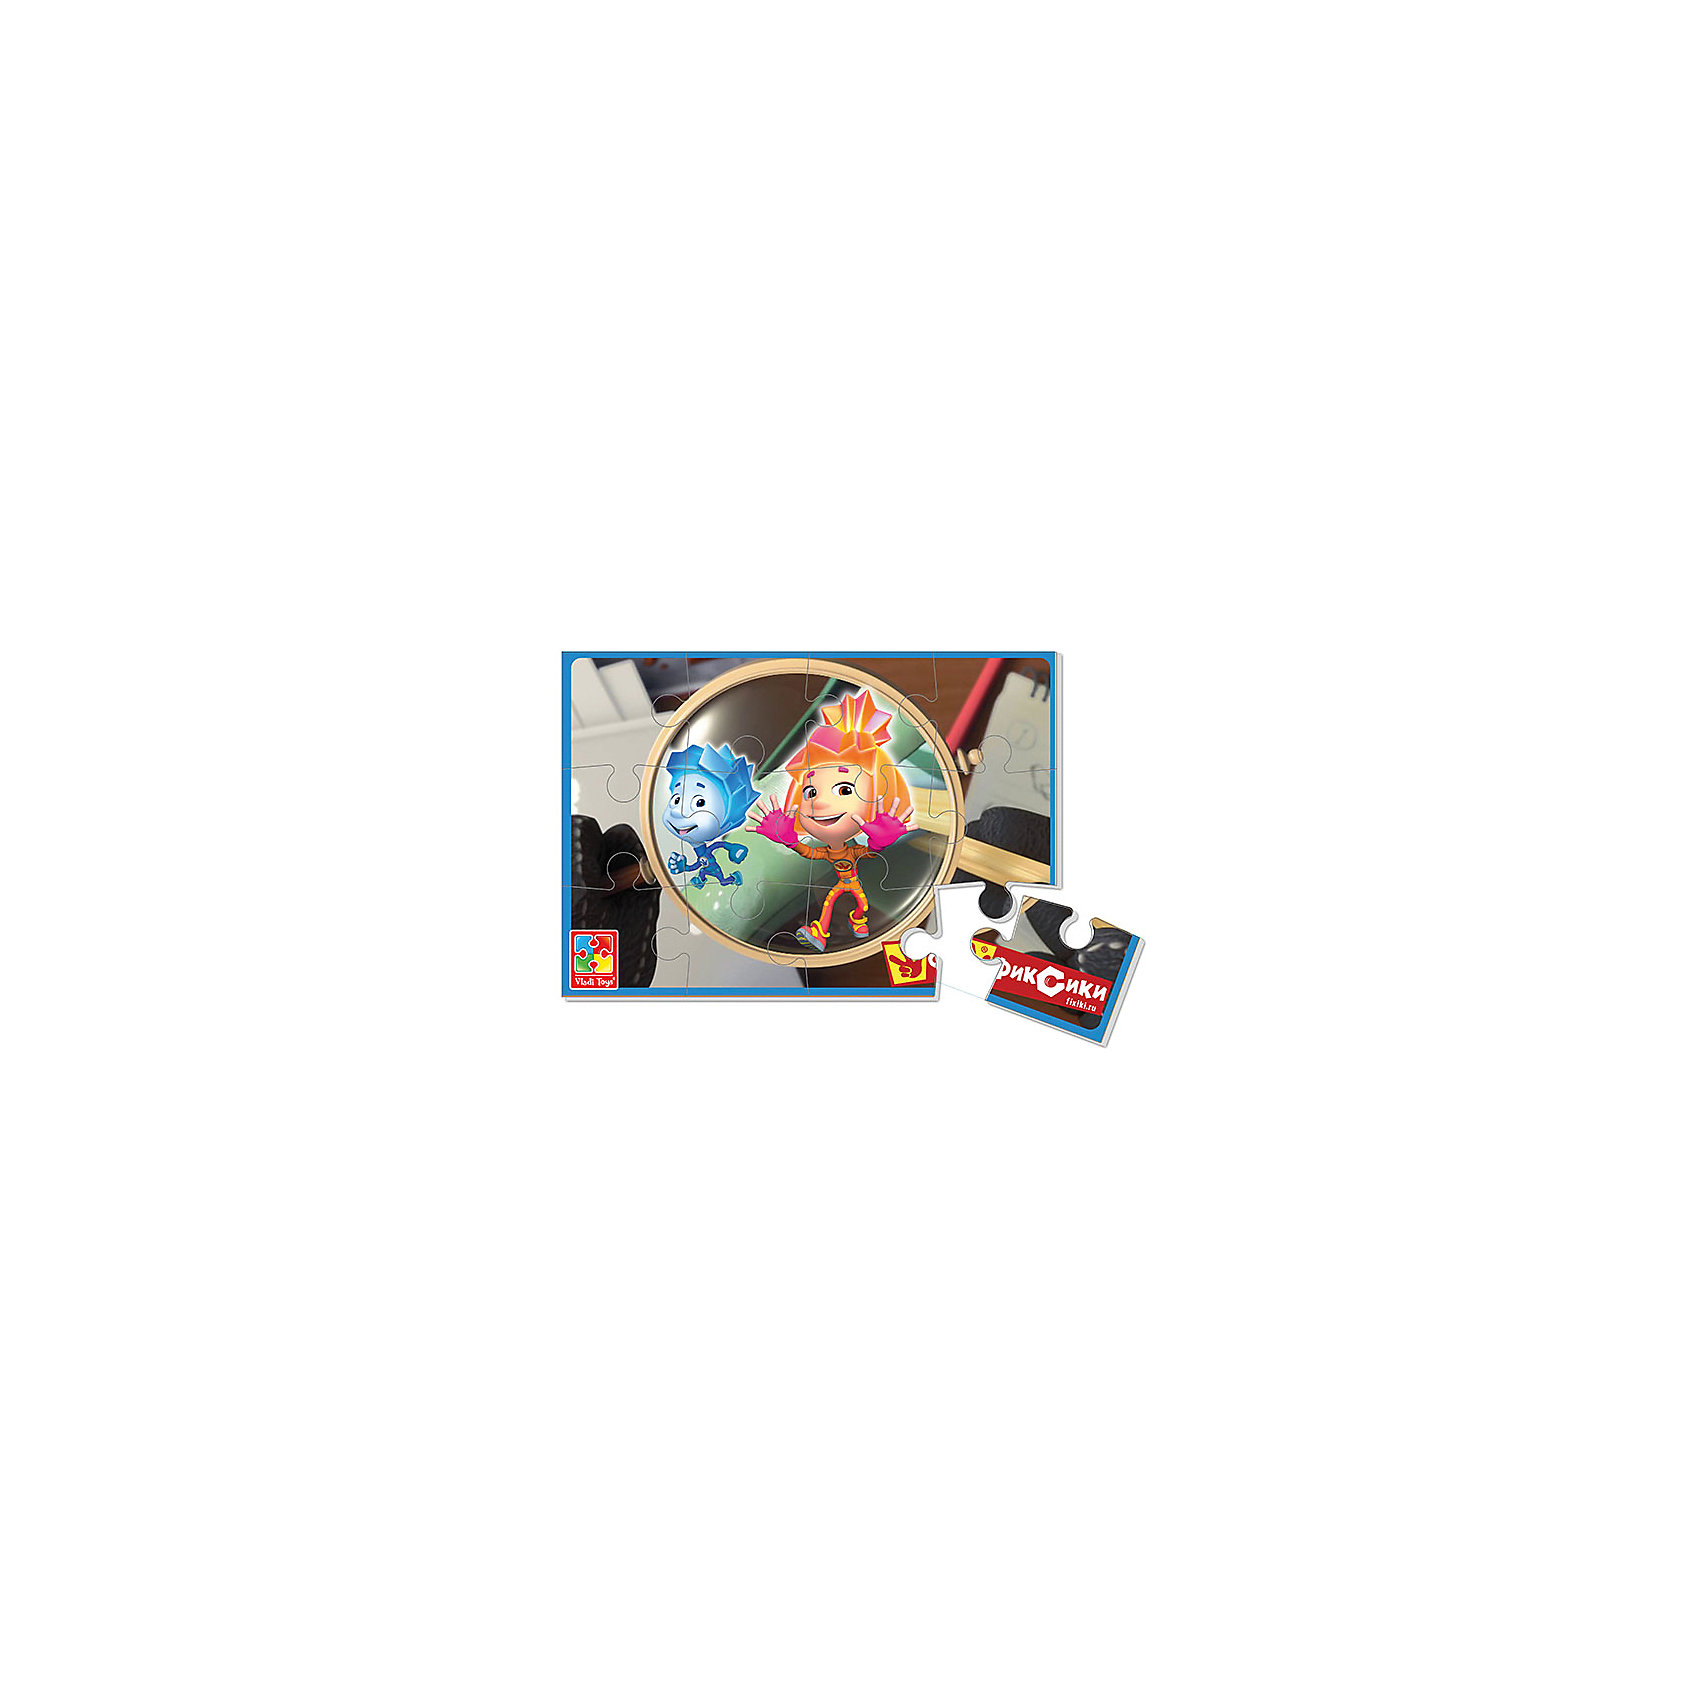 Vladi Toys Мягкие пазлы  А5 Фиксики, Vladi Toys пазлы vladi toys пазлы мягкие baby puzzle сказки репка